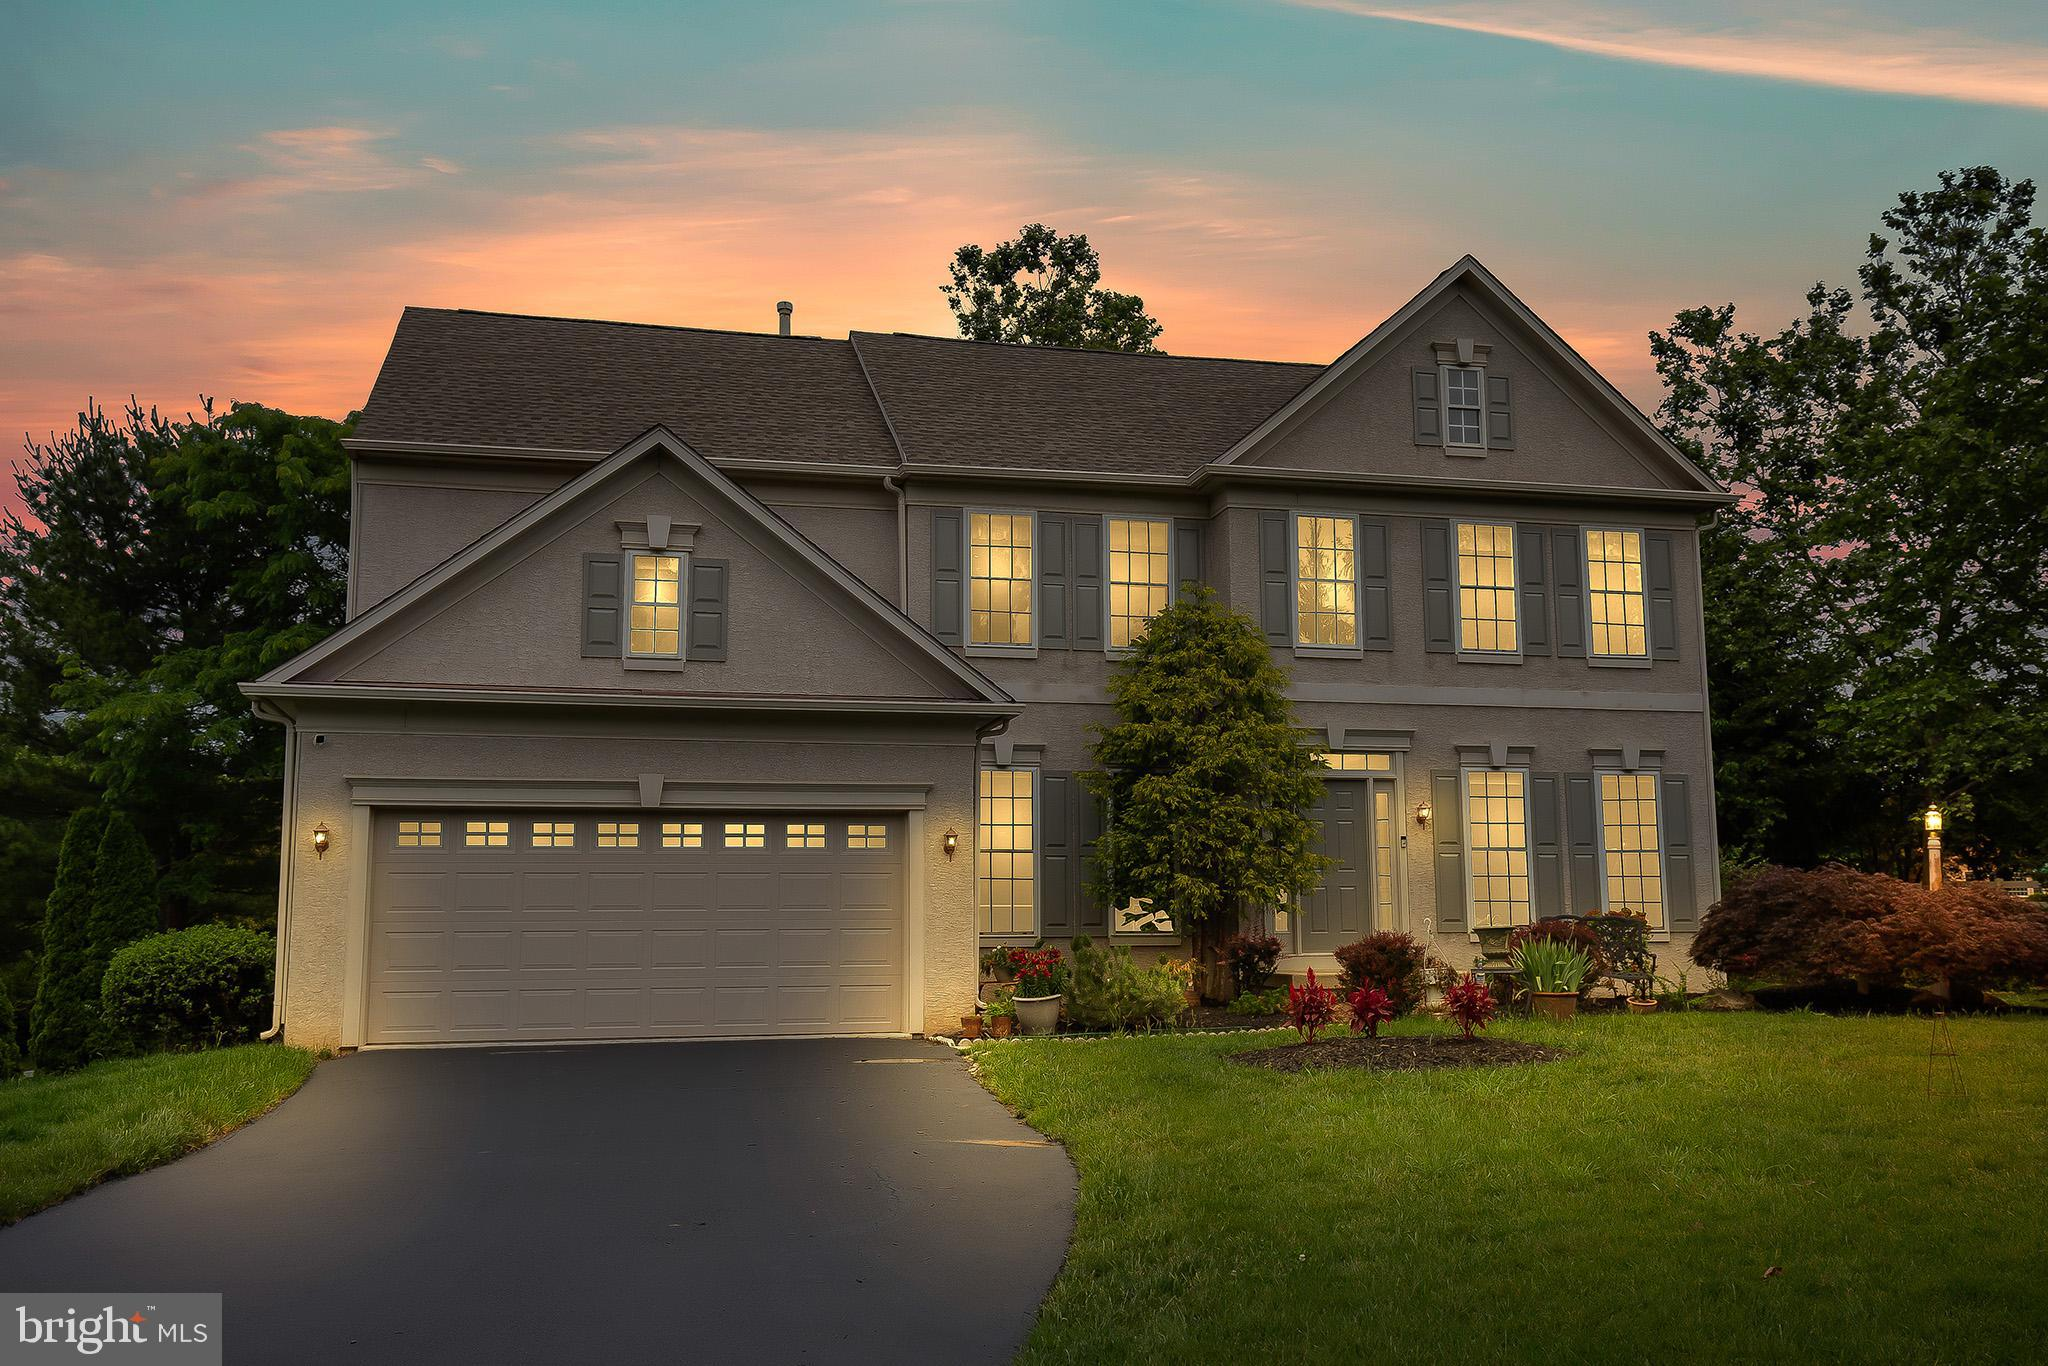 Welcome to 144 Applegate, a beautiful four-bedroom, two-bathroom, and two half-bath single-family home in the highly sought-after community of Applegate in West Goshen Township. This stunning, luxurious home features a two-car garage, a well-manicured private backyard, and has been lovingly maintained over the years. Stepping into the home, you will be in awe of the two-story foyer with hardwood floors, with the dining room and formal living room on both sides of the entry foyer. Stepping further into the entry foyer leads you to the expansive family room, with floor-to-ceiling windows permitting ample amounts of natural light to pierce through the entire main floor. The family room has an open concept into the breakfast area and the kitchen, perfect for entertaining!  The kitchen, with its gleaming hardwood floors, tons of cabinet space, gas range, and large kitchen island, is ready for its new owners to make it theirs! The kitchen has access to the garage and mudroom! Completing the main floor is an incredibly bright powder room! Ascending the staircase, the second floor hallway features an open air design with a view of the foyer and family room! With three large bedroom, one guest bathroom, and a huge Master Suite, this floor embodies how meticulously the home has been cared for over the years. The Master bathroom features a huge double vanity, a soaking tub, and a walk-in shower, along with a linen closet! A large window completes this bathroom, brightening up the entire room with sunlight. The basement is expansive and is perfectly ready to be finished to provide a huge amount of entertainment space to the next owners! The basement also features a walk-up to the backyard, and a powder room in anticipation of finishing off the space! The backyard has also been lovingly cared for, with steps leading to a large brick paver, well-manicured bushes and trees, along with a shed and a fence! To top it off, 144 Applegate is also located in the highly sought-after West 